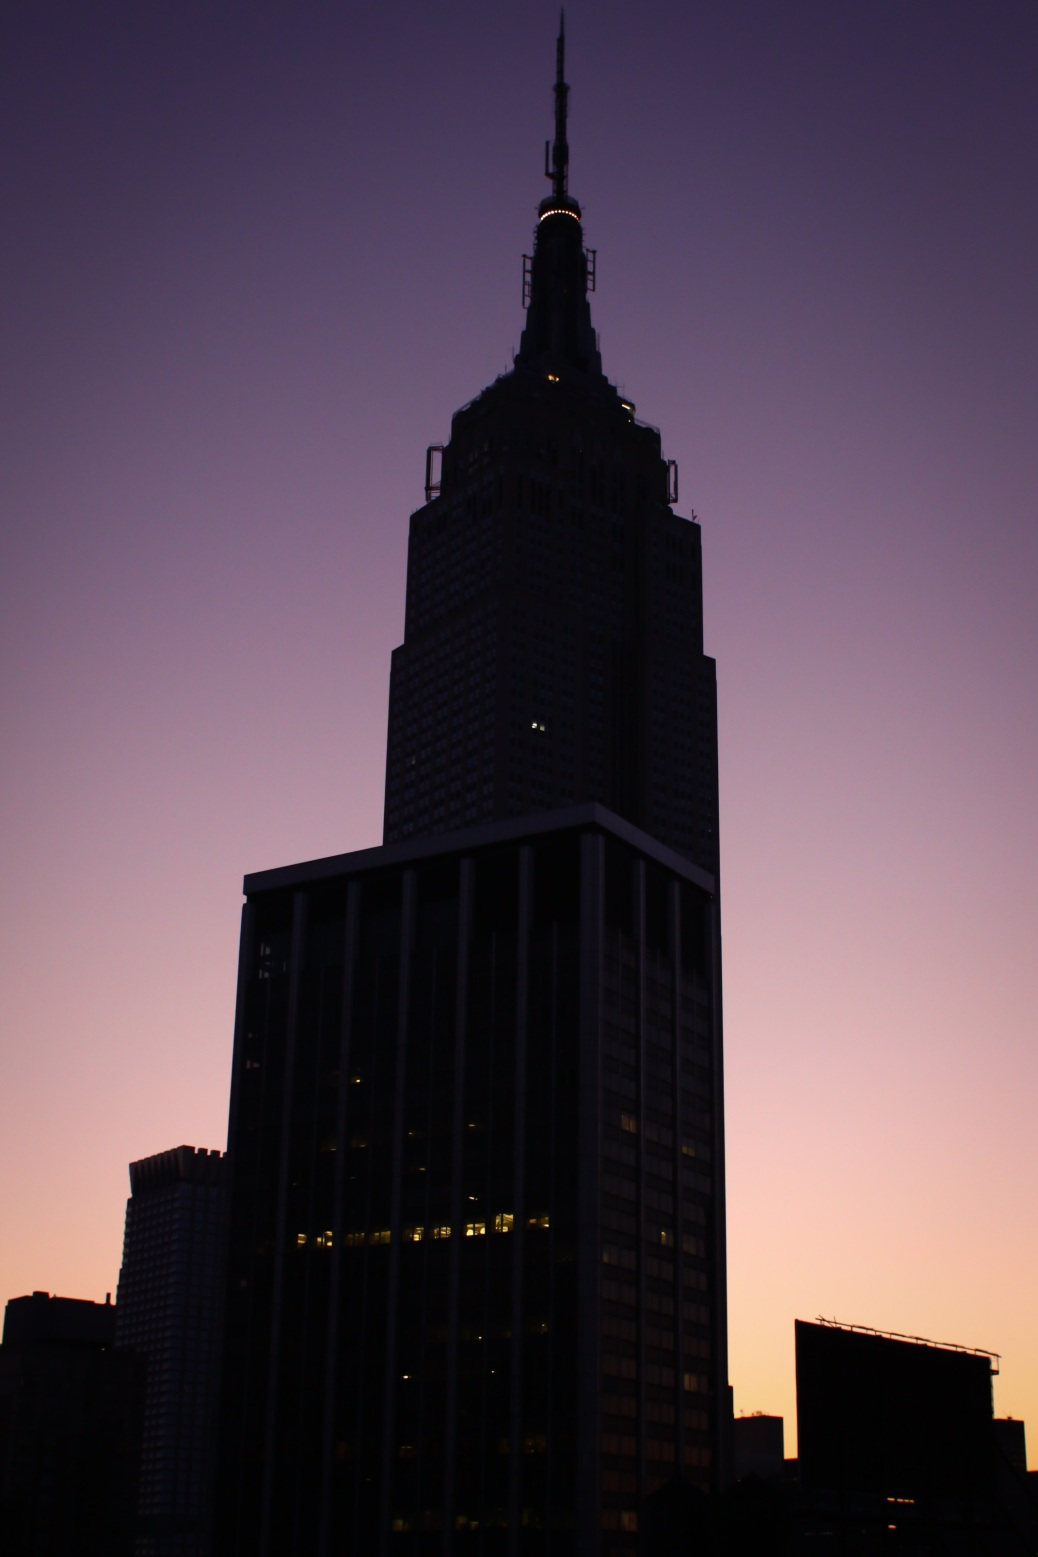 Empire State Buidling im Sonnenaufgang